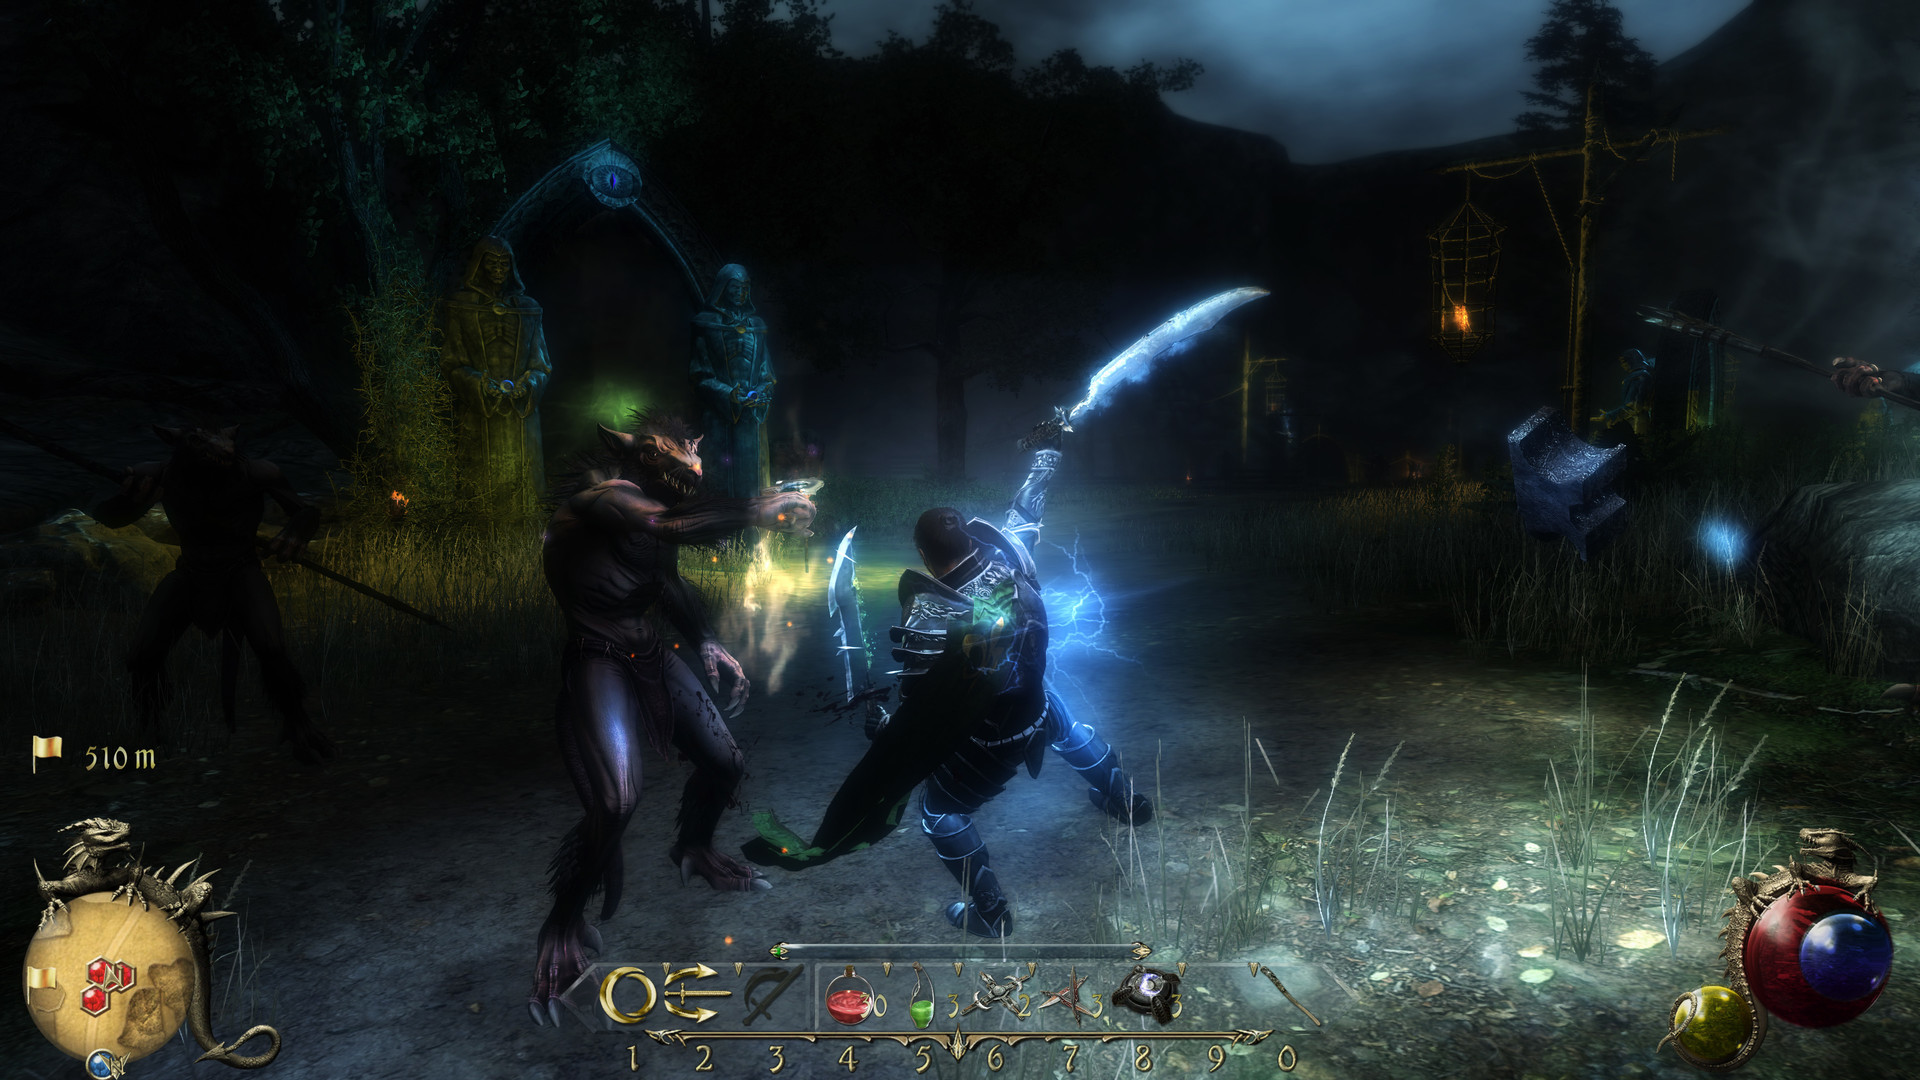 Two Worlds II - Call of the Tenebrae Screenshot 2